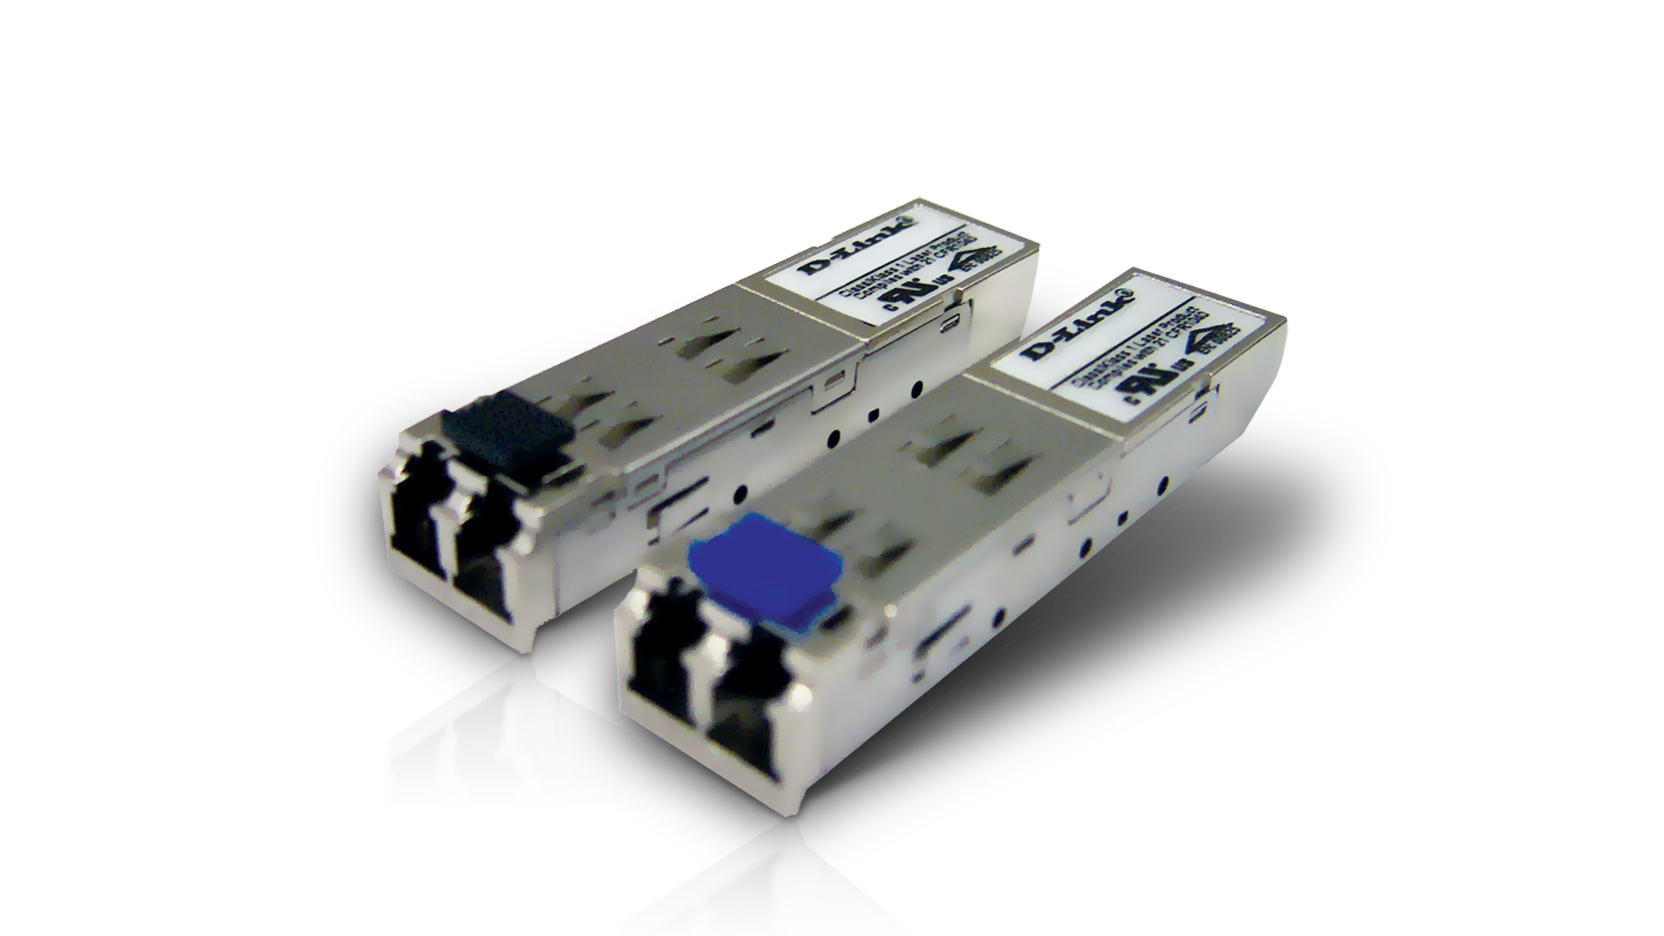 Gigabit Smart Managed Switches D Link Uk Power Saver Circuit Diagram Jumbo Intelligent Related Products